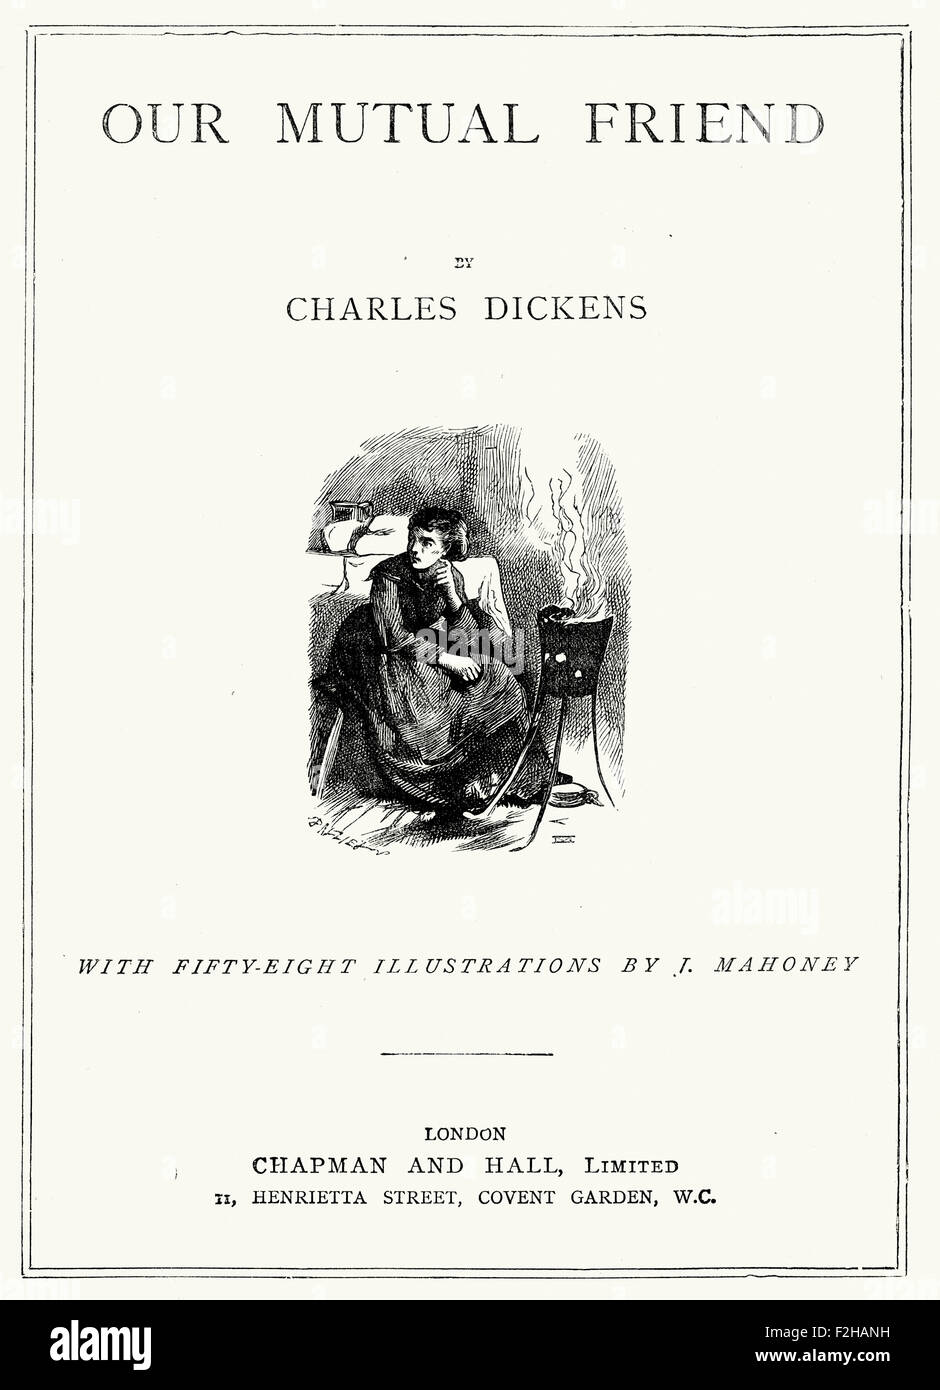 Title page of Our Mutual Friend by Charles Dickens - Stock Image